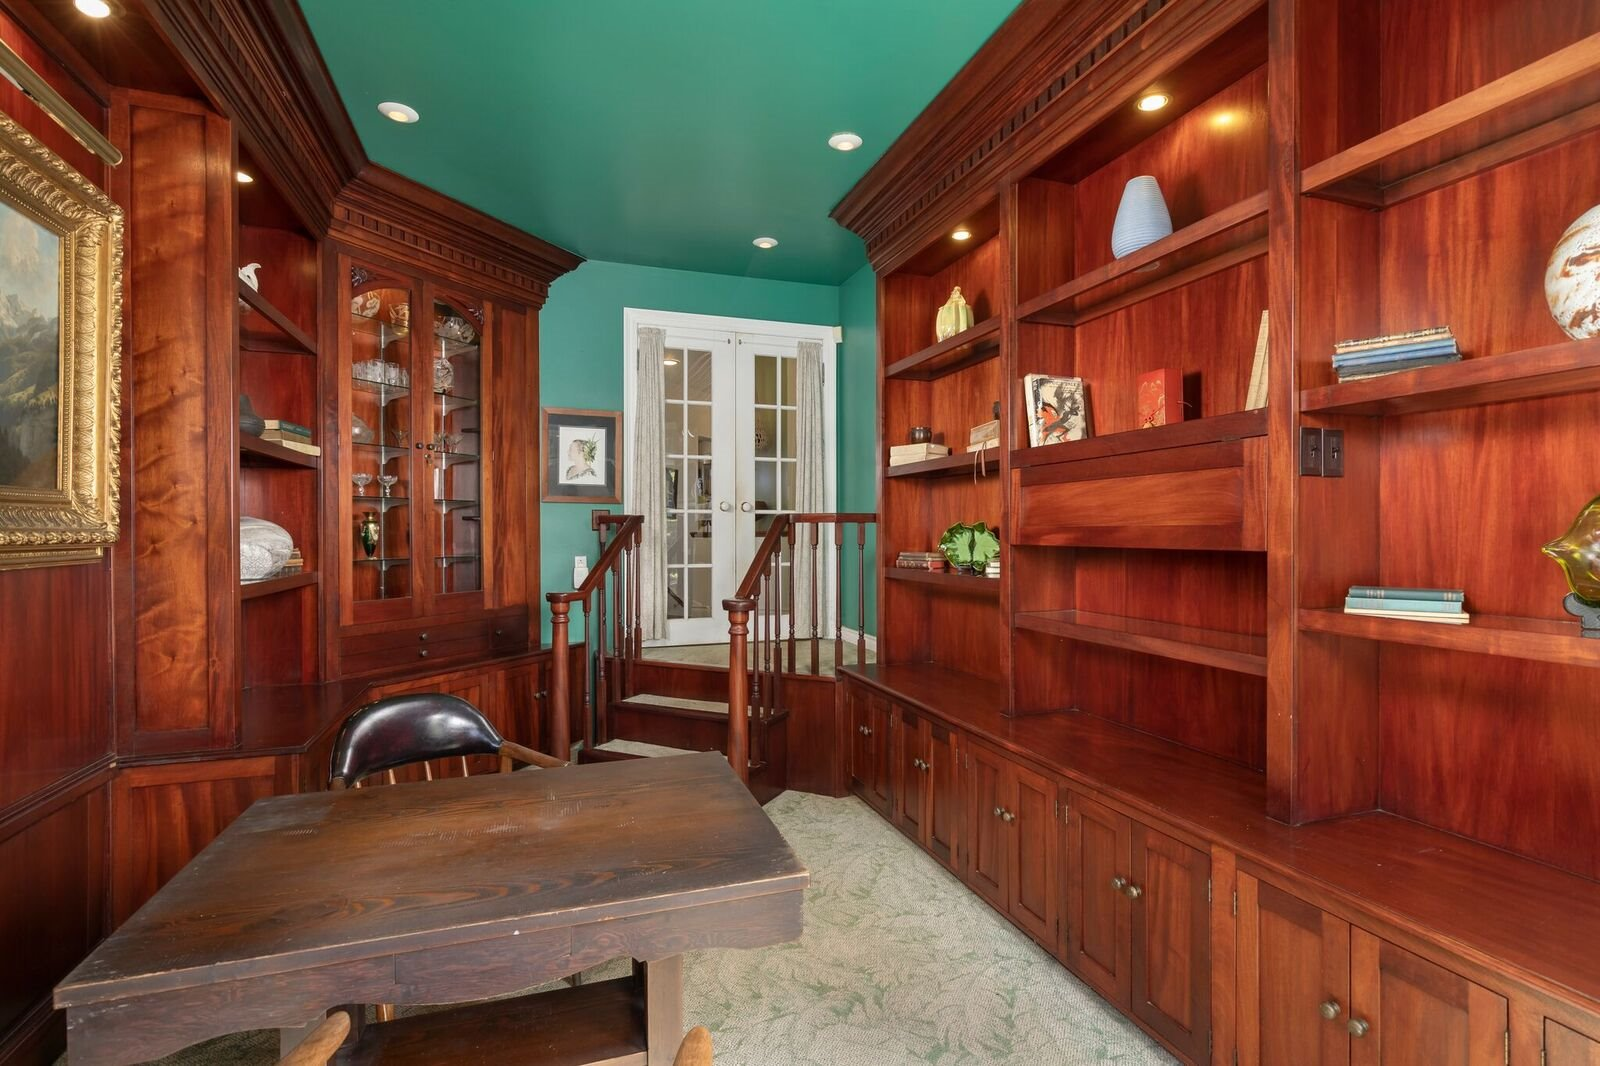 The office feels more like a library with wood and glass shelving throughout.